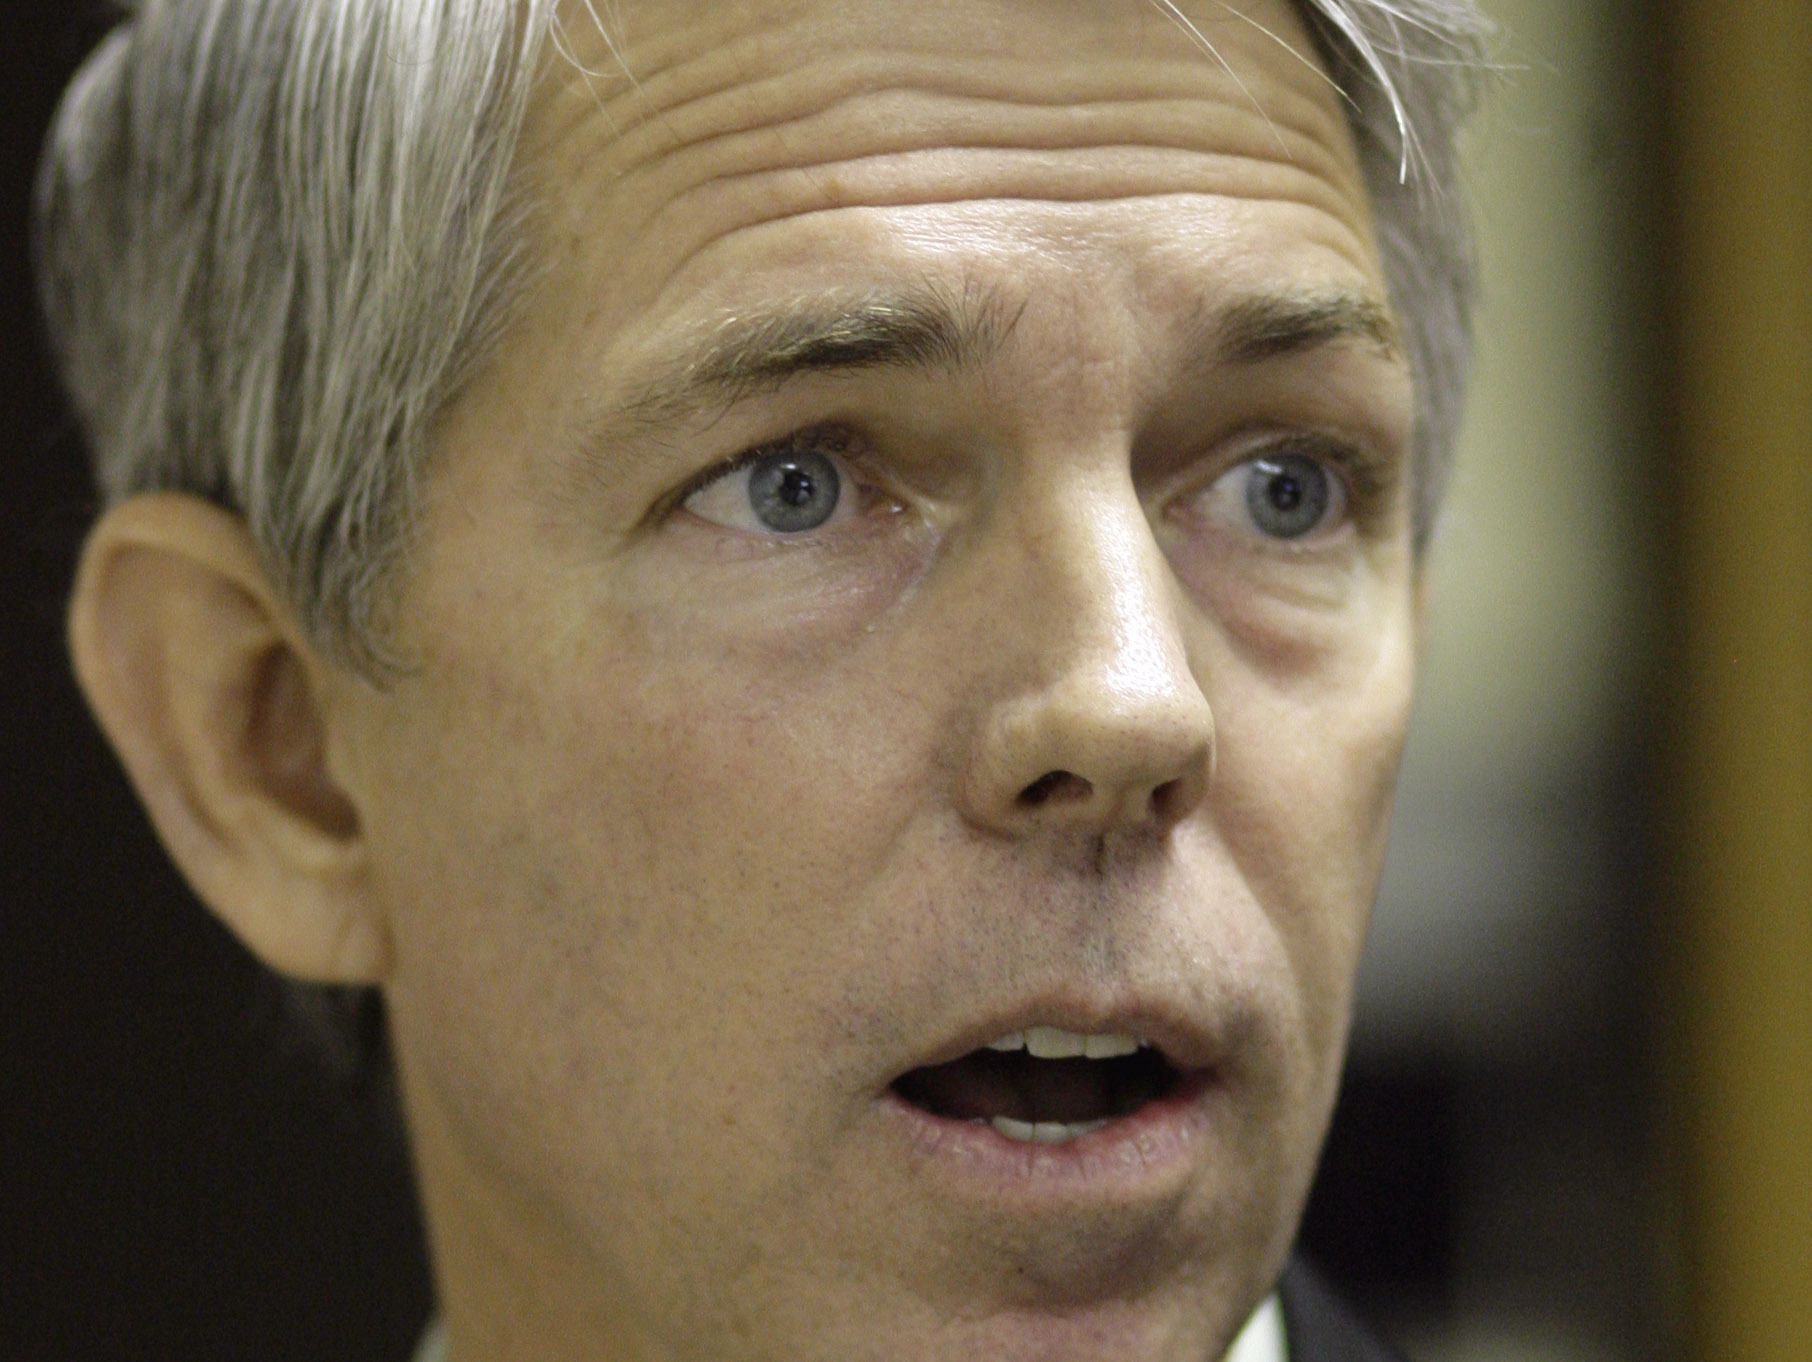 Republican activist David Barton speaks before testifying before the Texas State Board of Education in 2009.